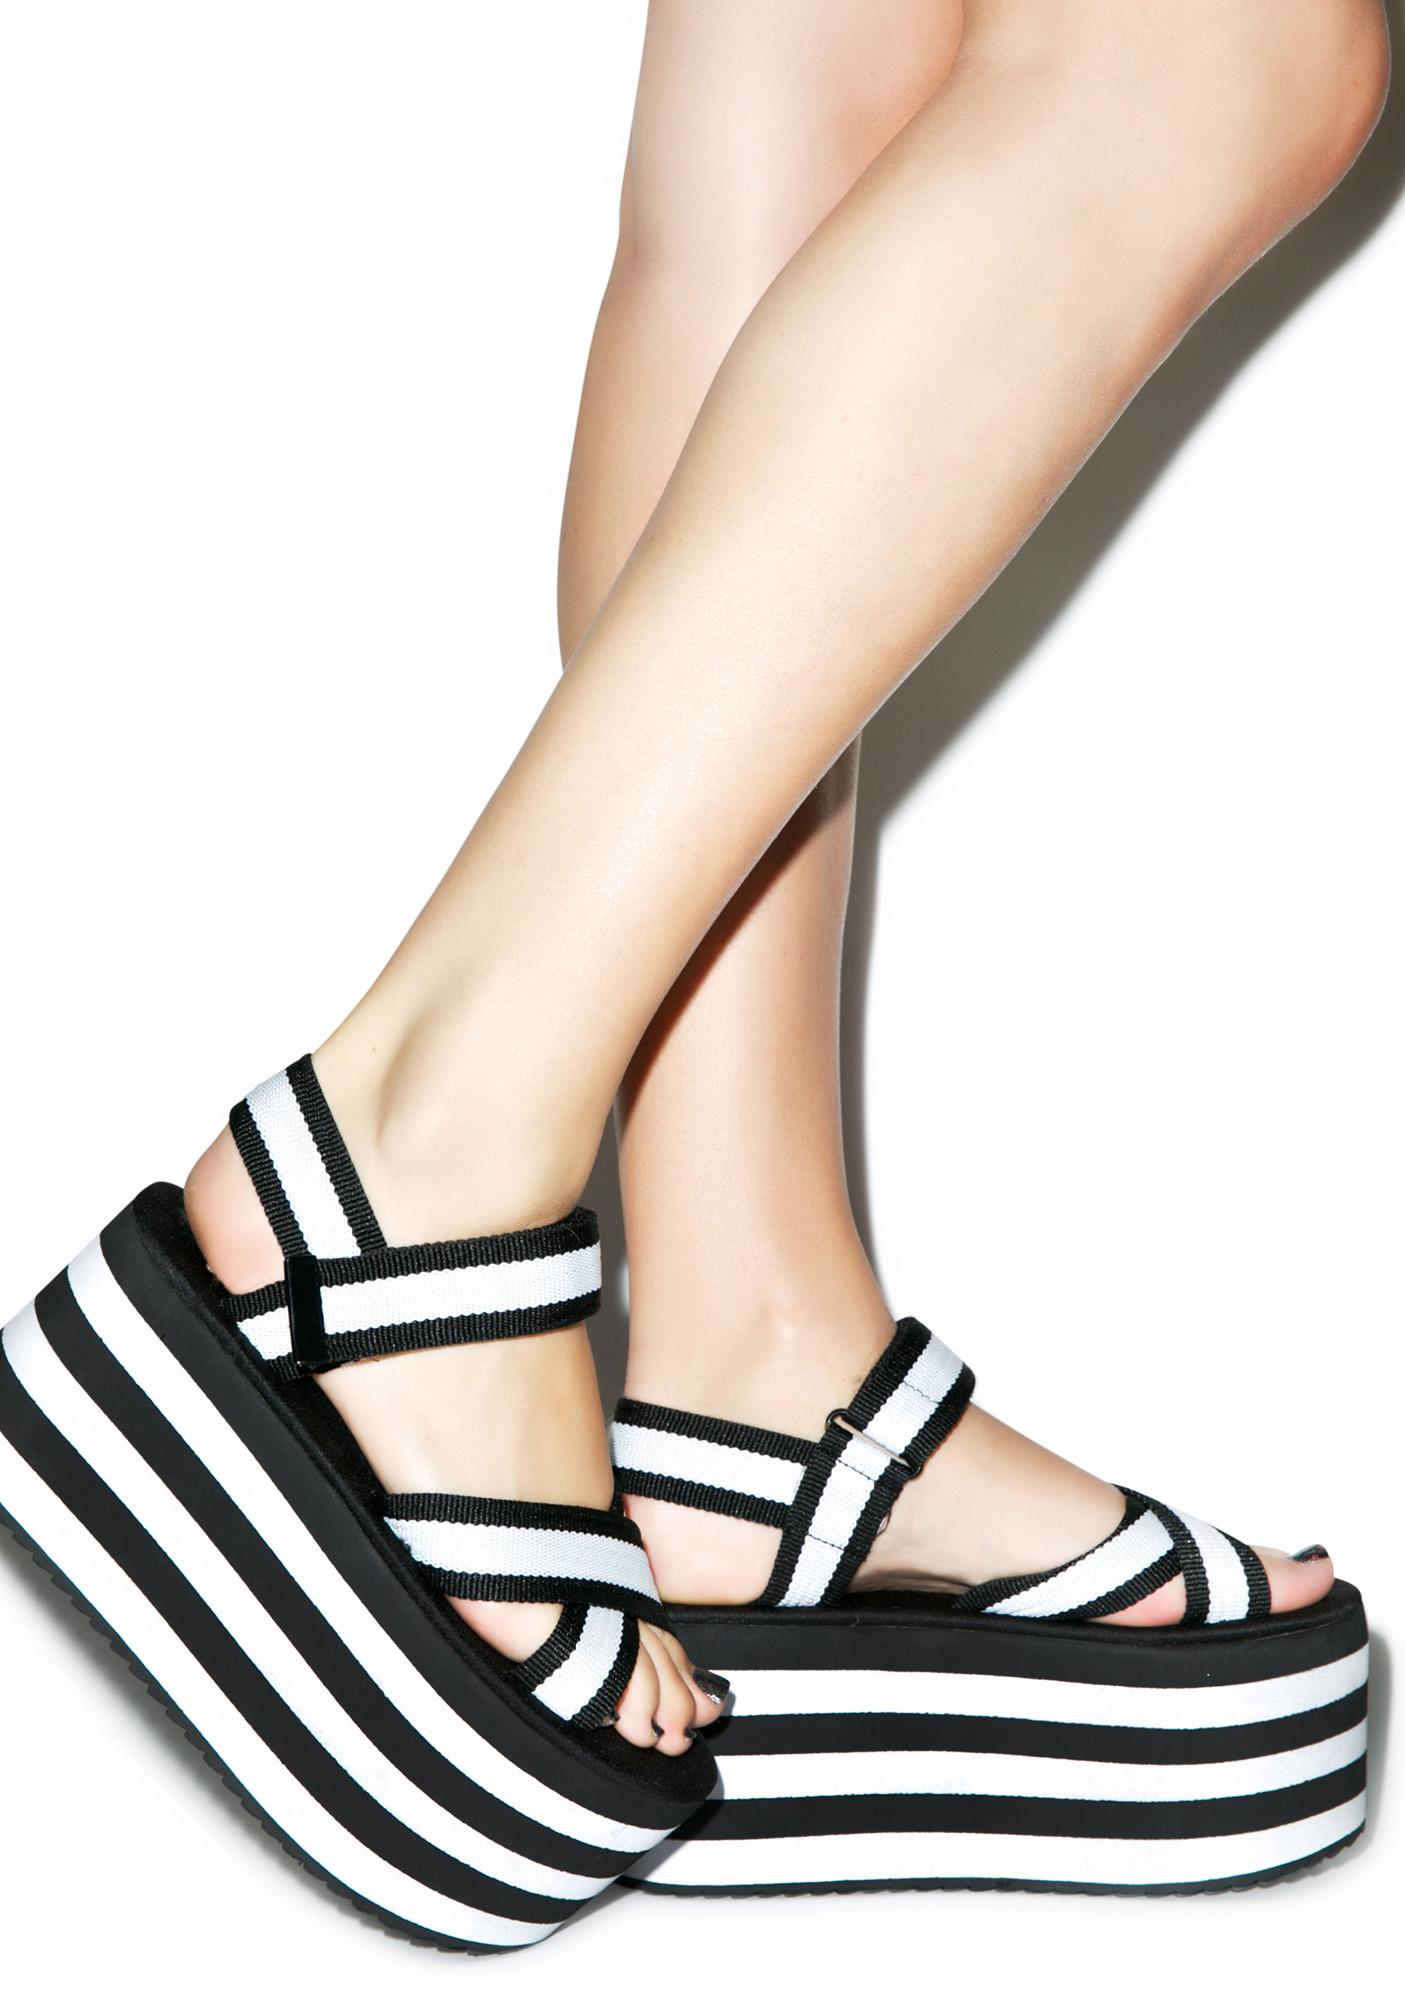 Y.R.U. Black & White Prizm Platforms